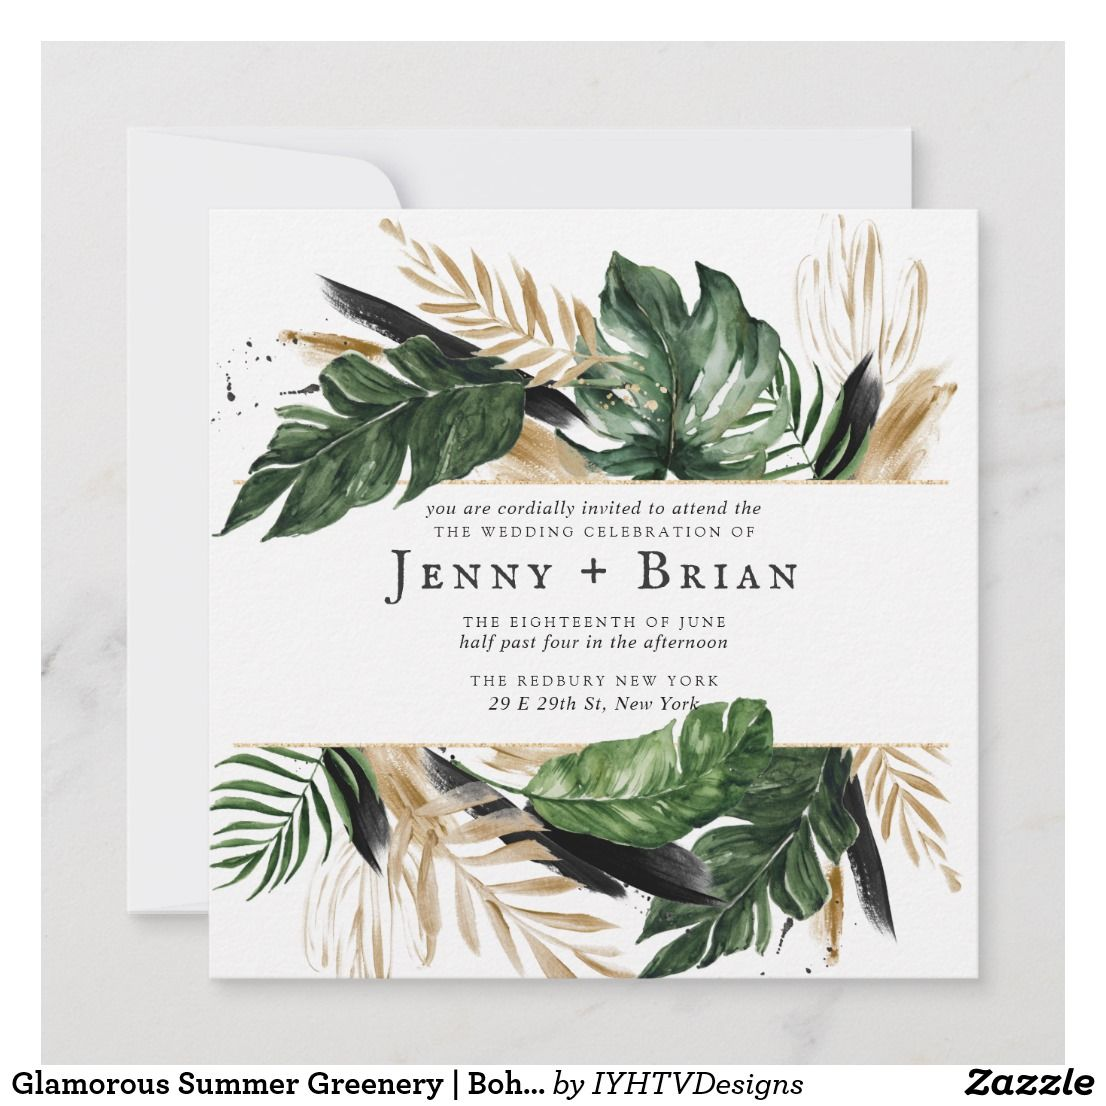 Glamorous Summer Greenery Boho Botanical Wedding Zazzle Com